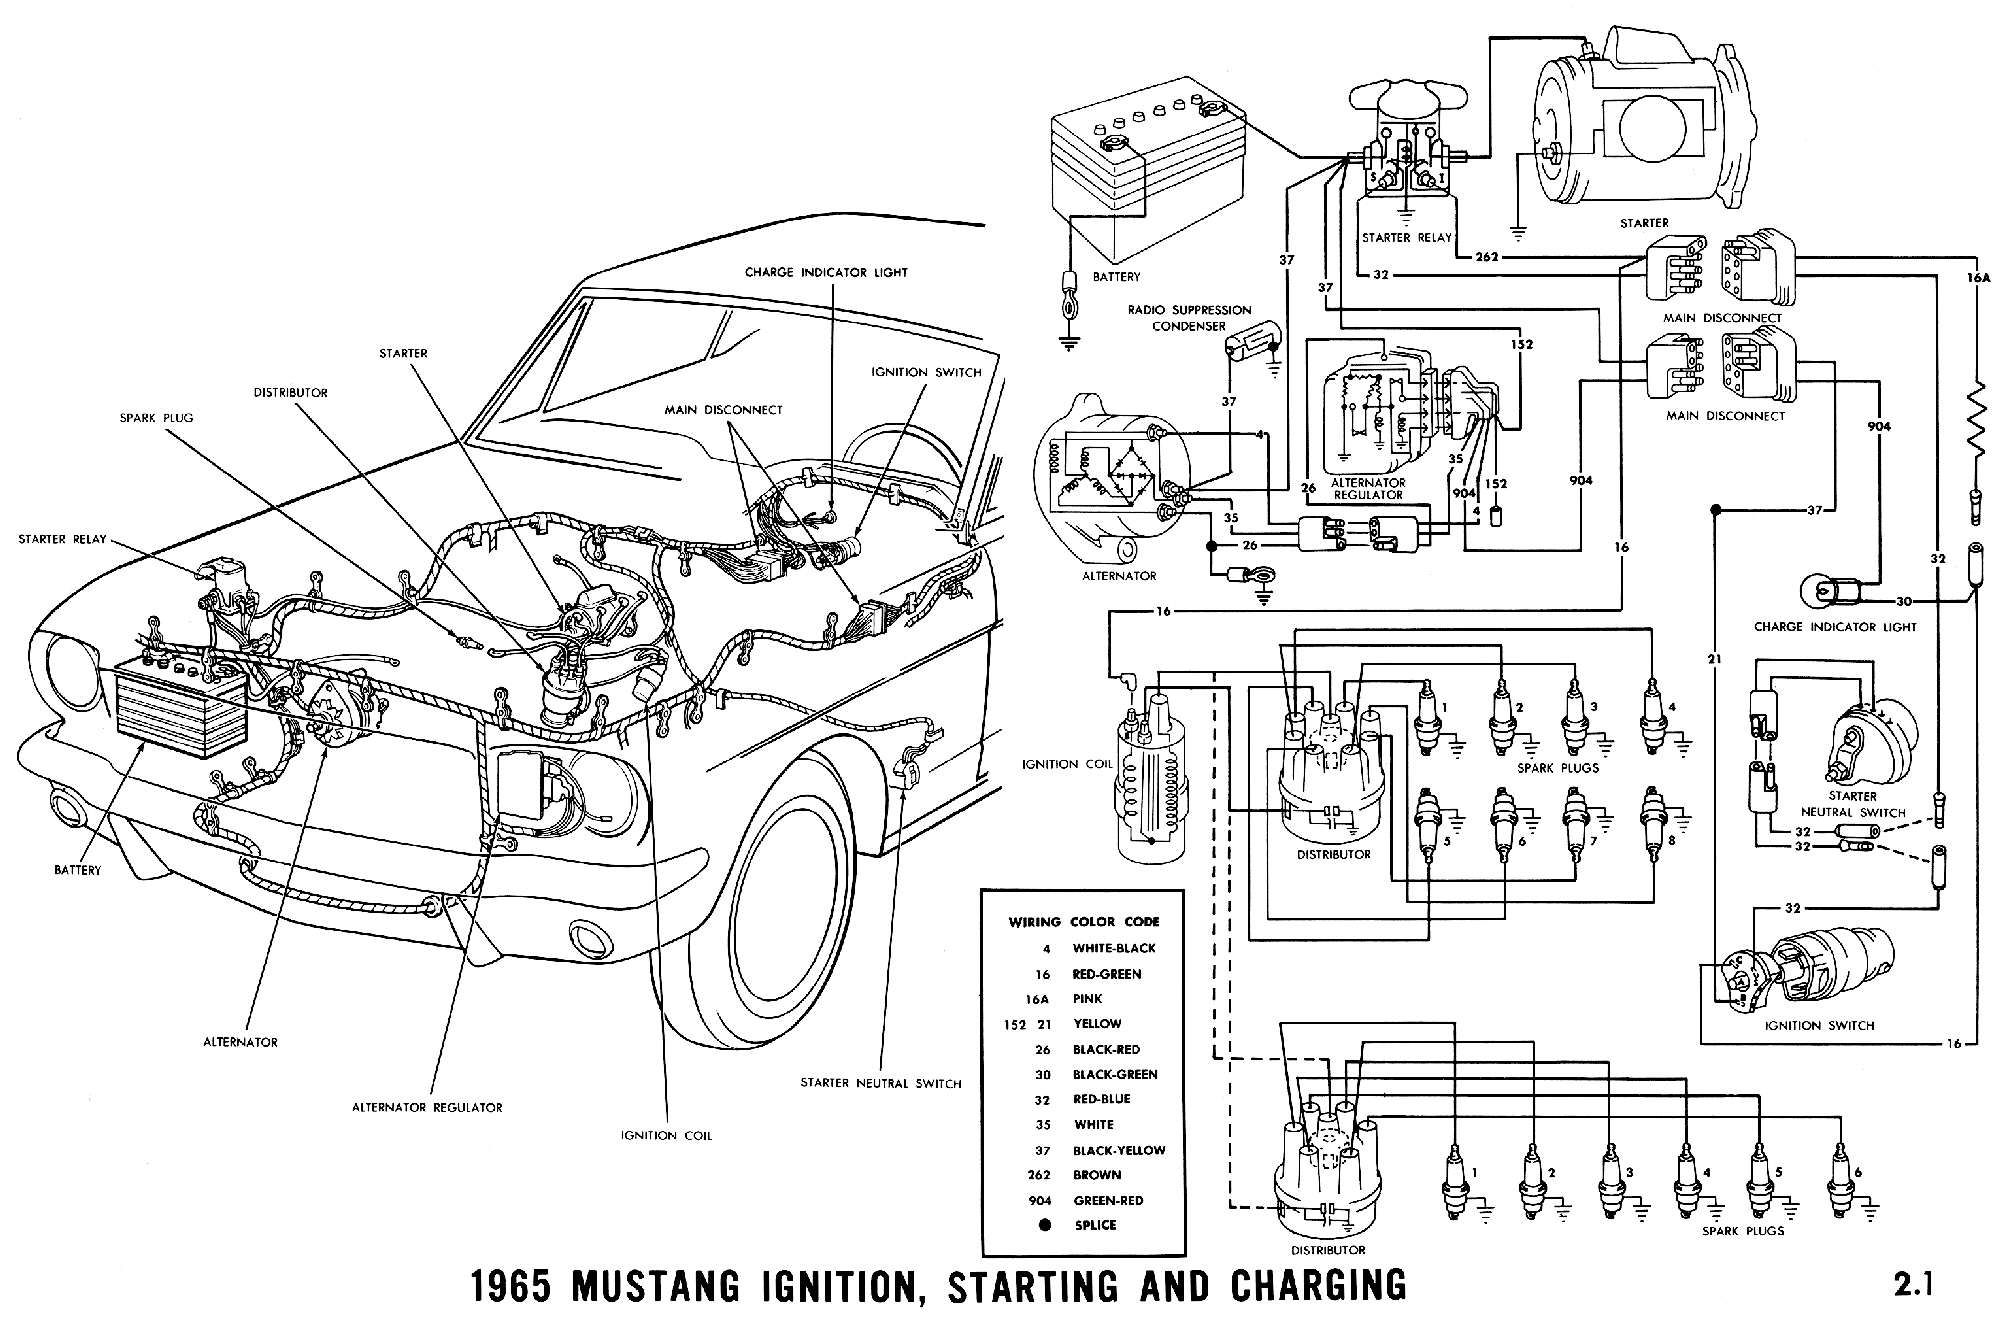 hight resolution of 1965 mustang wiring diagrams average joe restoration 1964 lincoln continental wiring diagram 1967 lincoln continental wiring diagram